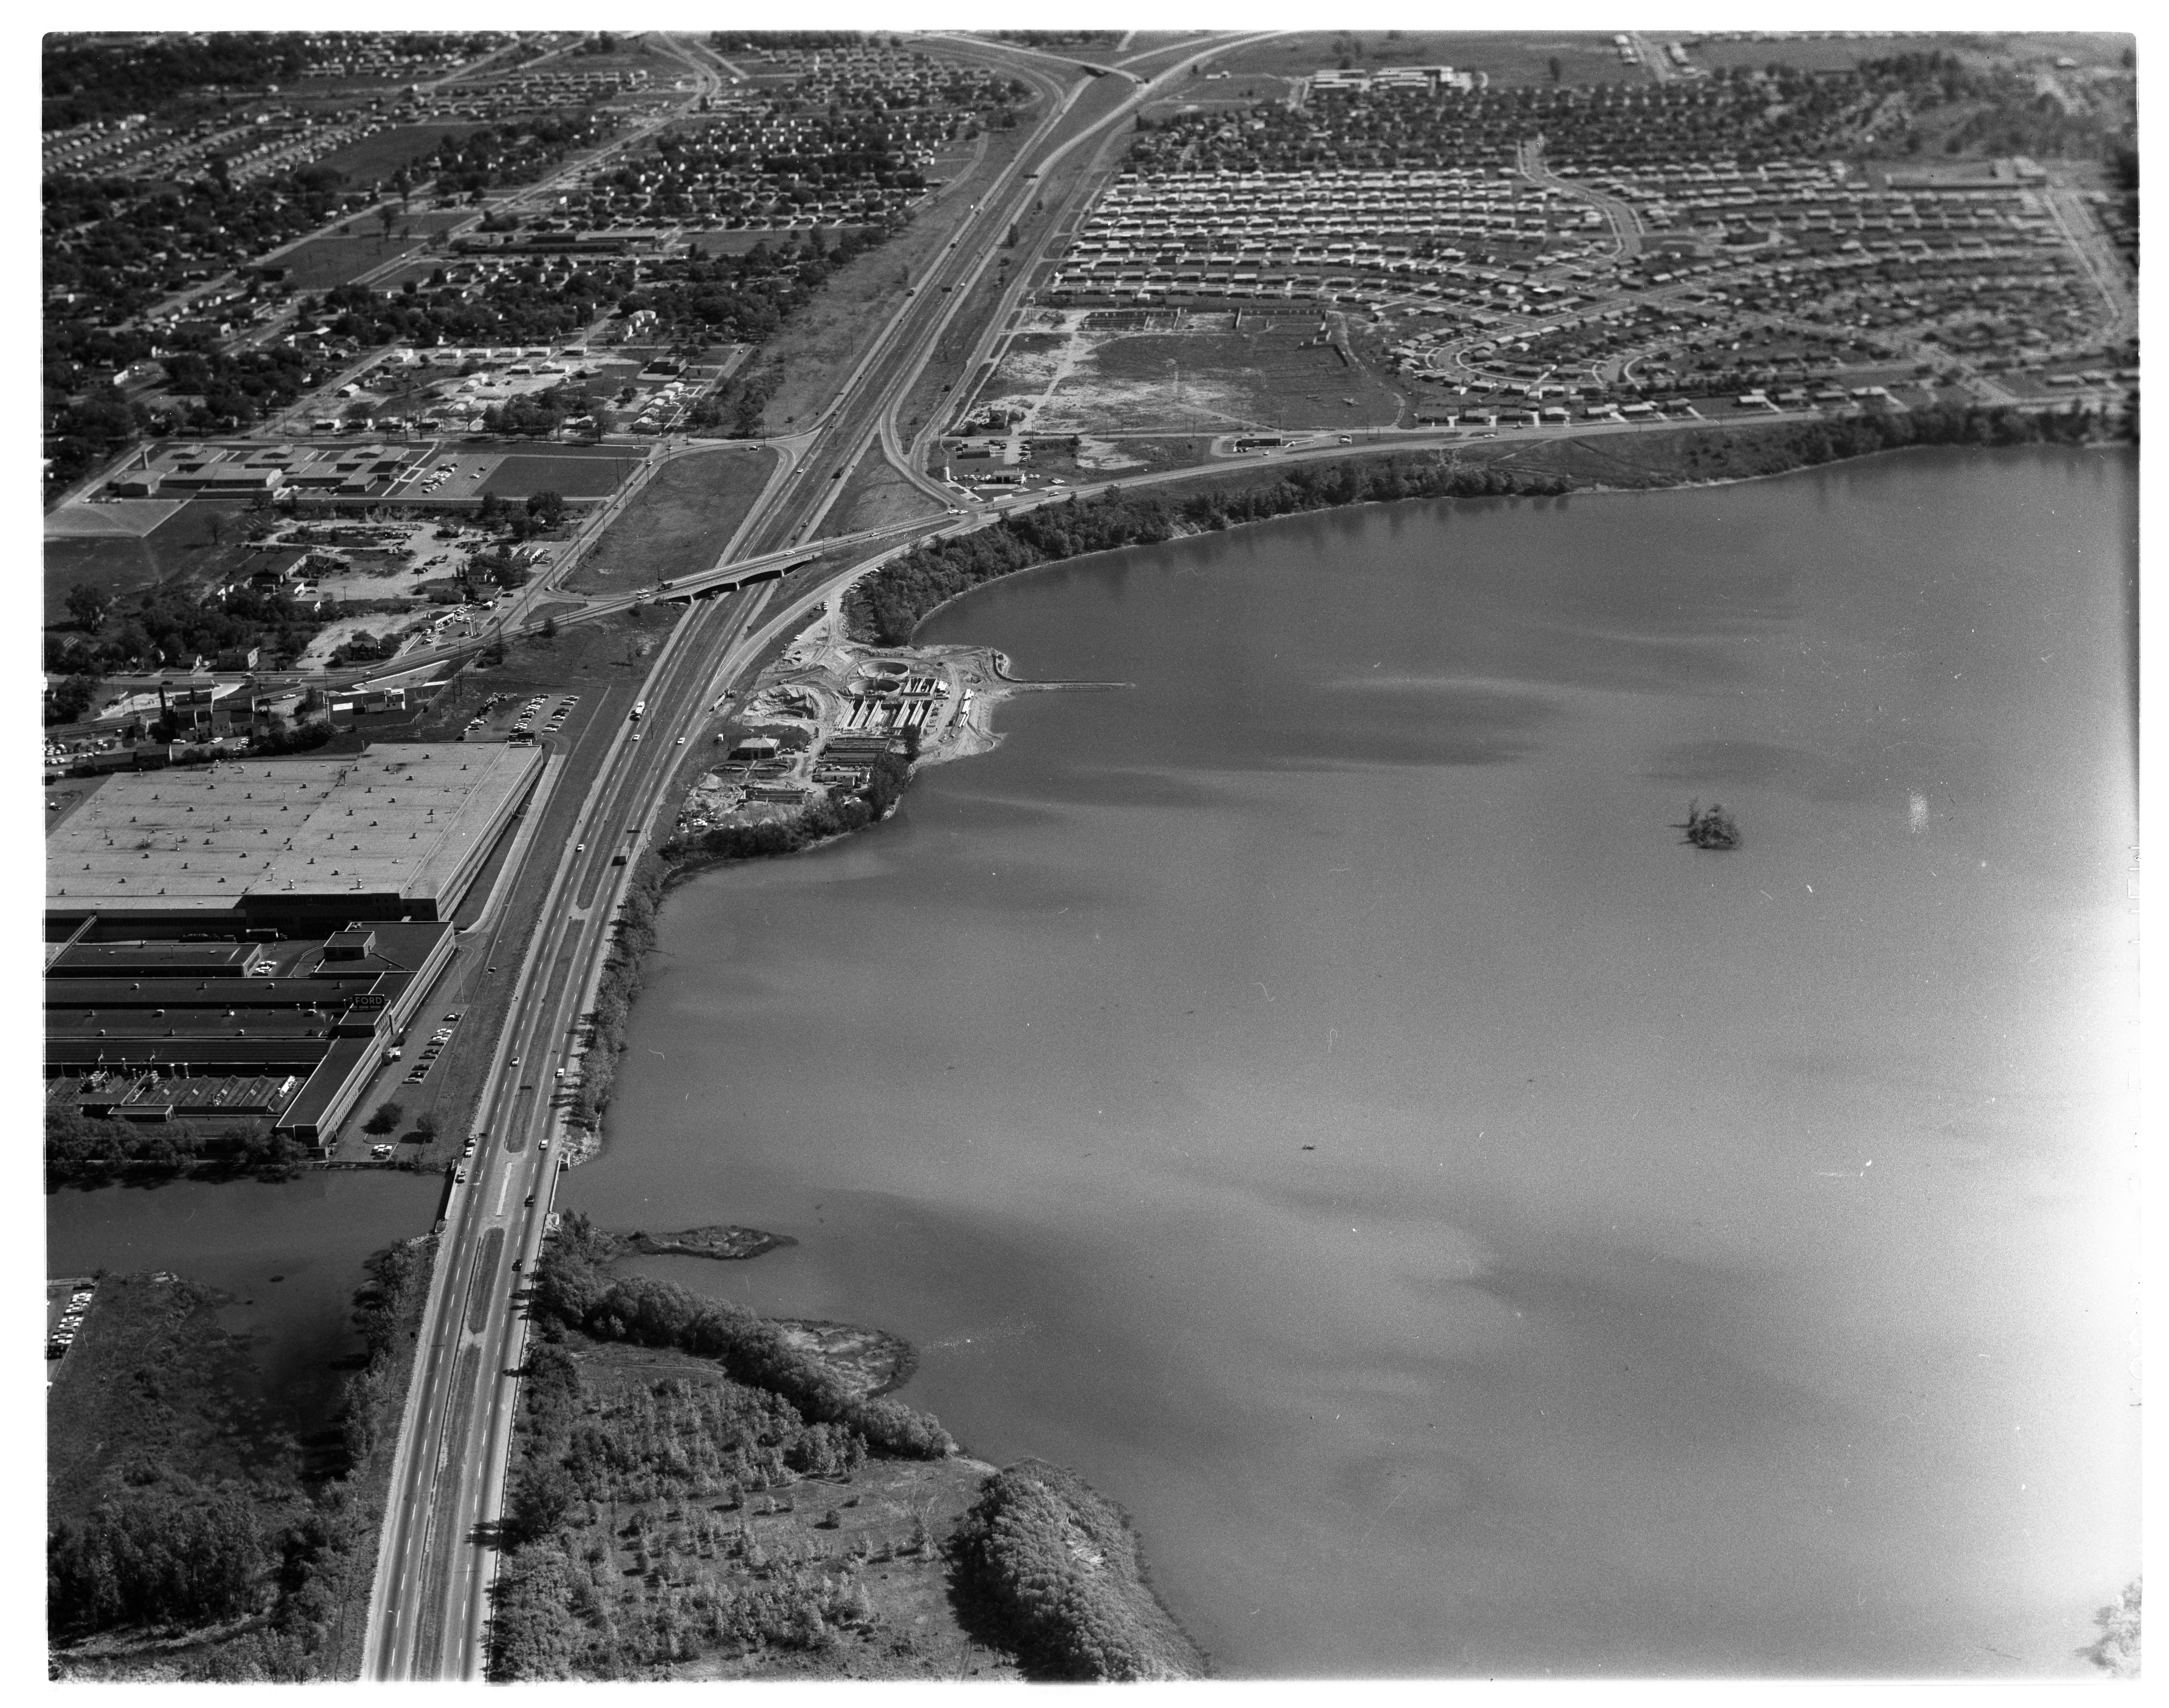 Aerial Photograph of Ypsilanti's Sewage Plant, October 1962 image